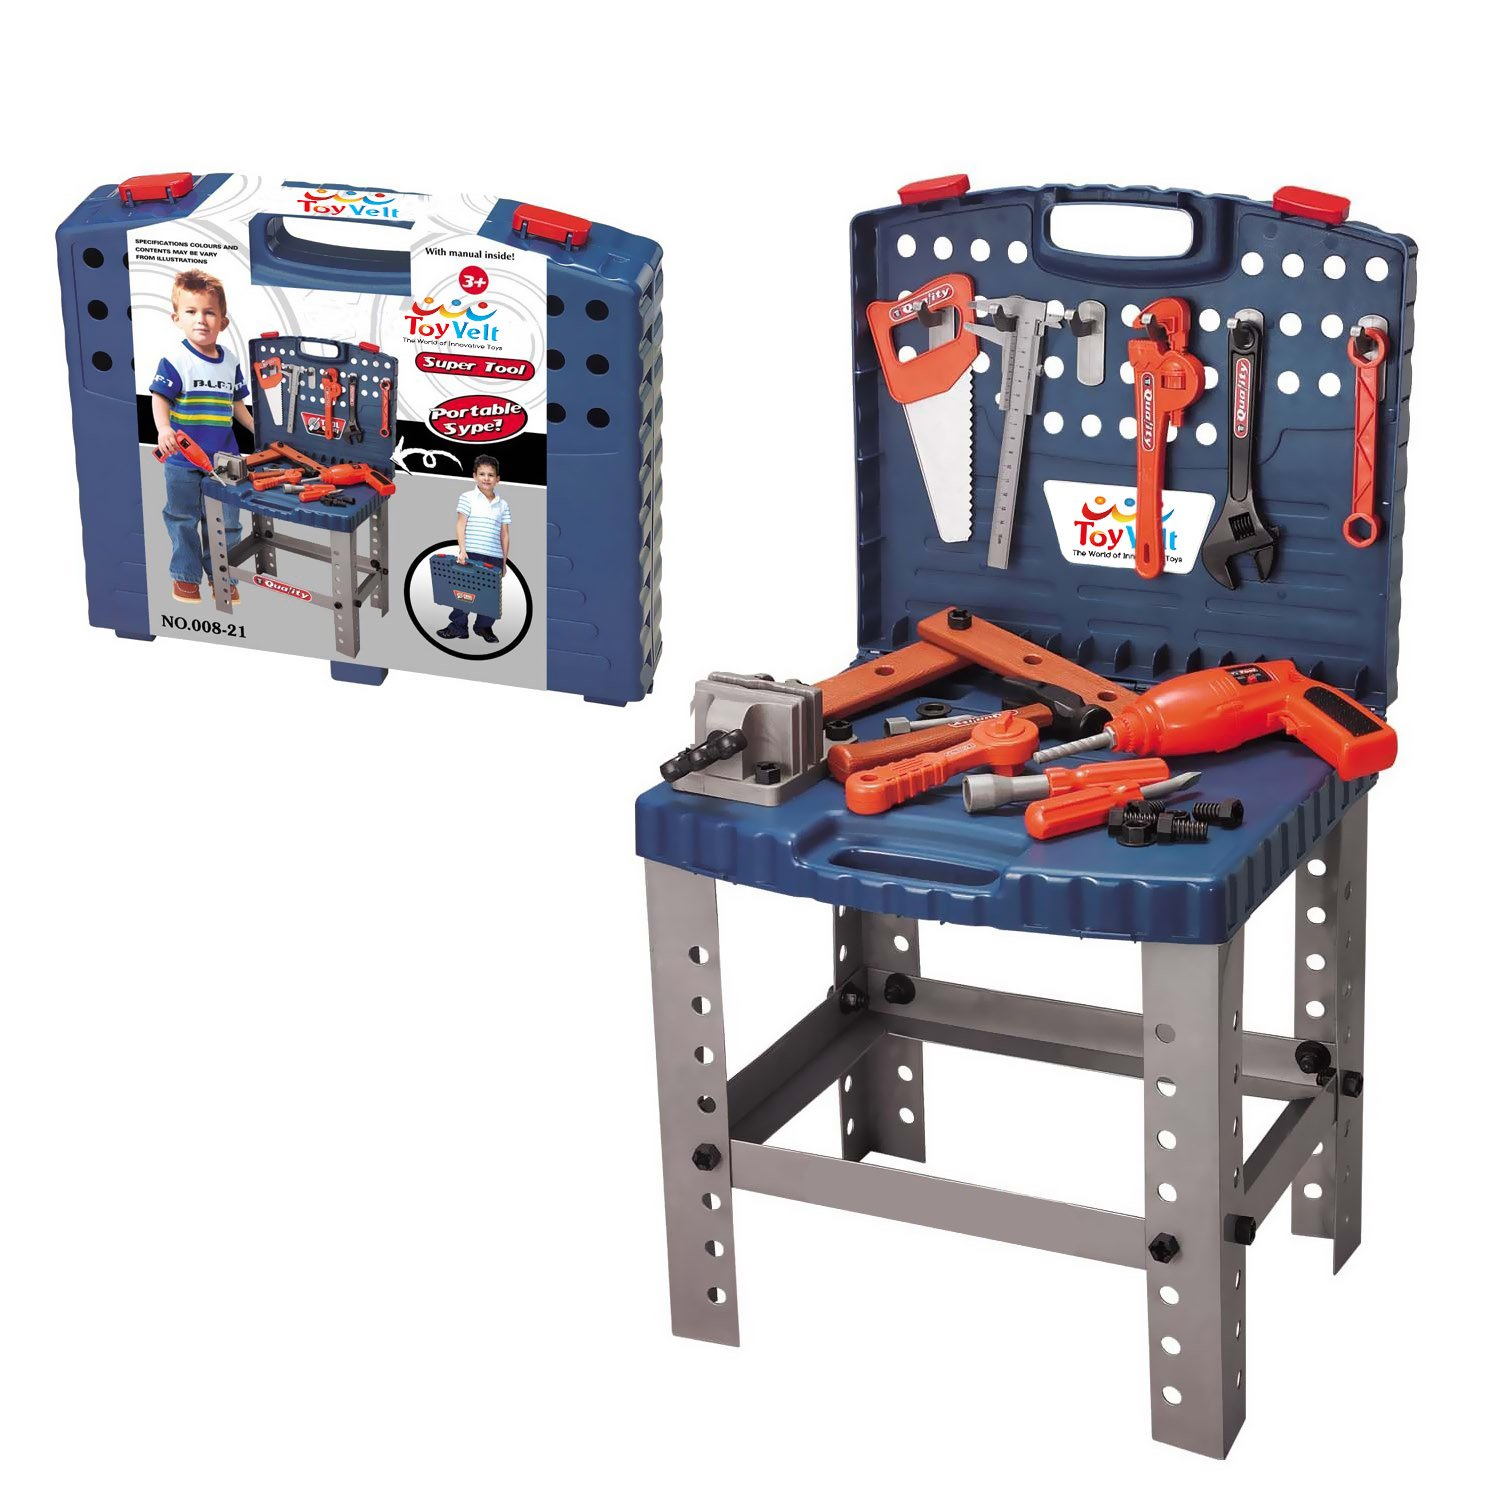 68 Piece Kids Toy Workbench W Realistic Tools and Electric Drill for Construction Workshop Tool Bench, STEM Educational Play, Pretend Play, Birthday Gifts and Toolbox for age 3 - 10 yrs old by toyvelt